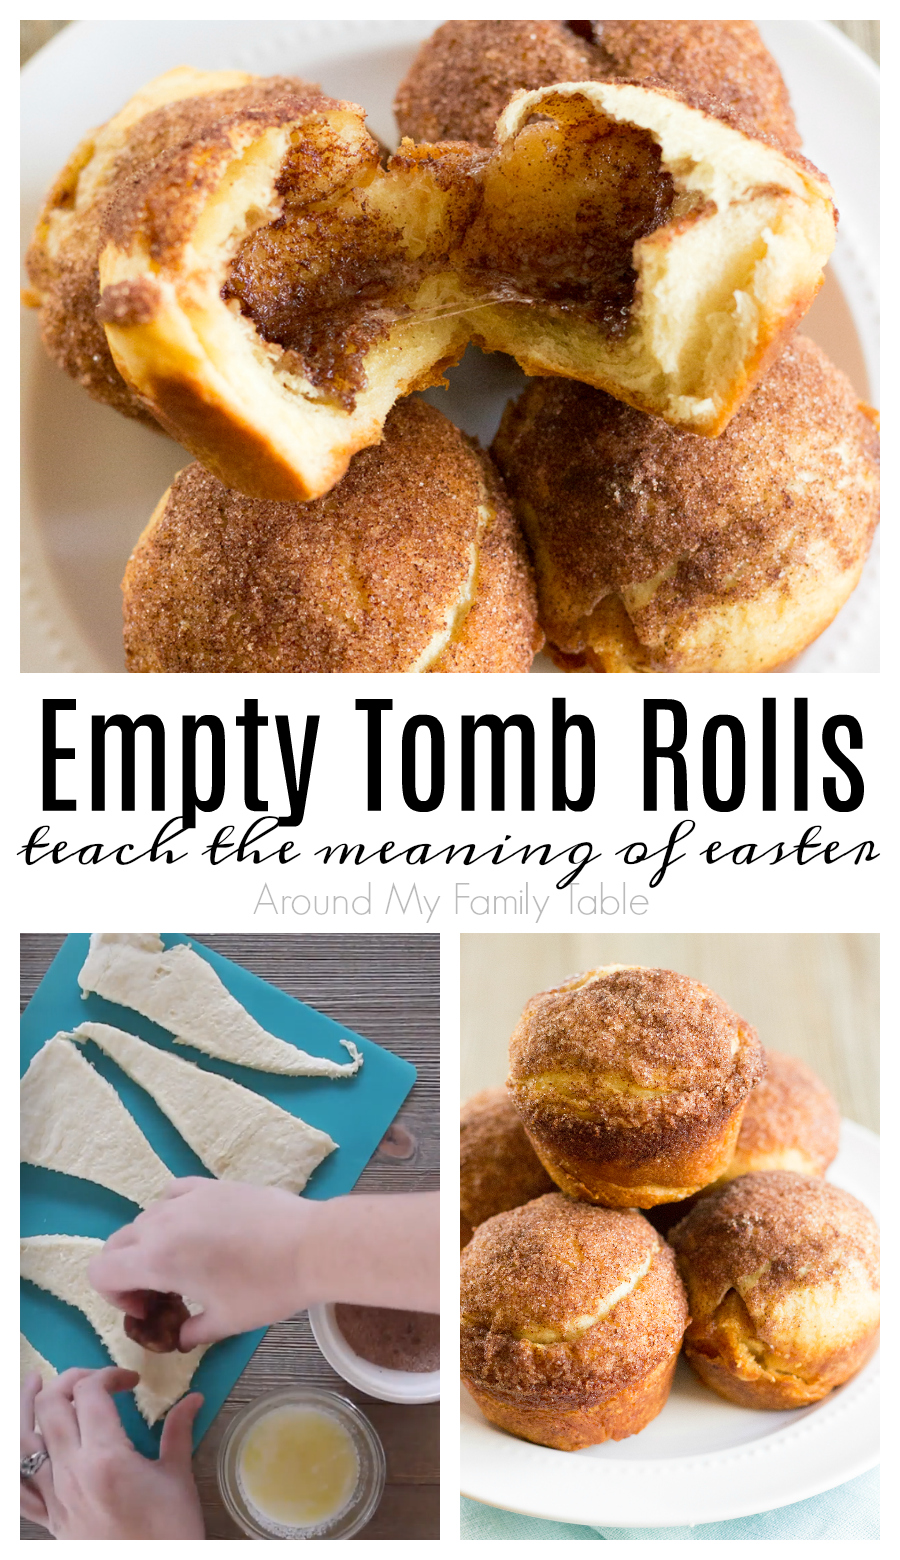 These delicious rolls are the perfect object lesson for kids on Easter morning that teaches the reason for celebrating Easter. My Empty Tomb Rolls are a tradition in our family and have really become a family favorite. Plus I have a secret tip to help keep the rolls together while baking. #easter #emptytombrolls #resurrectionrolls #easterstory #christian